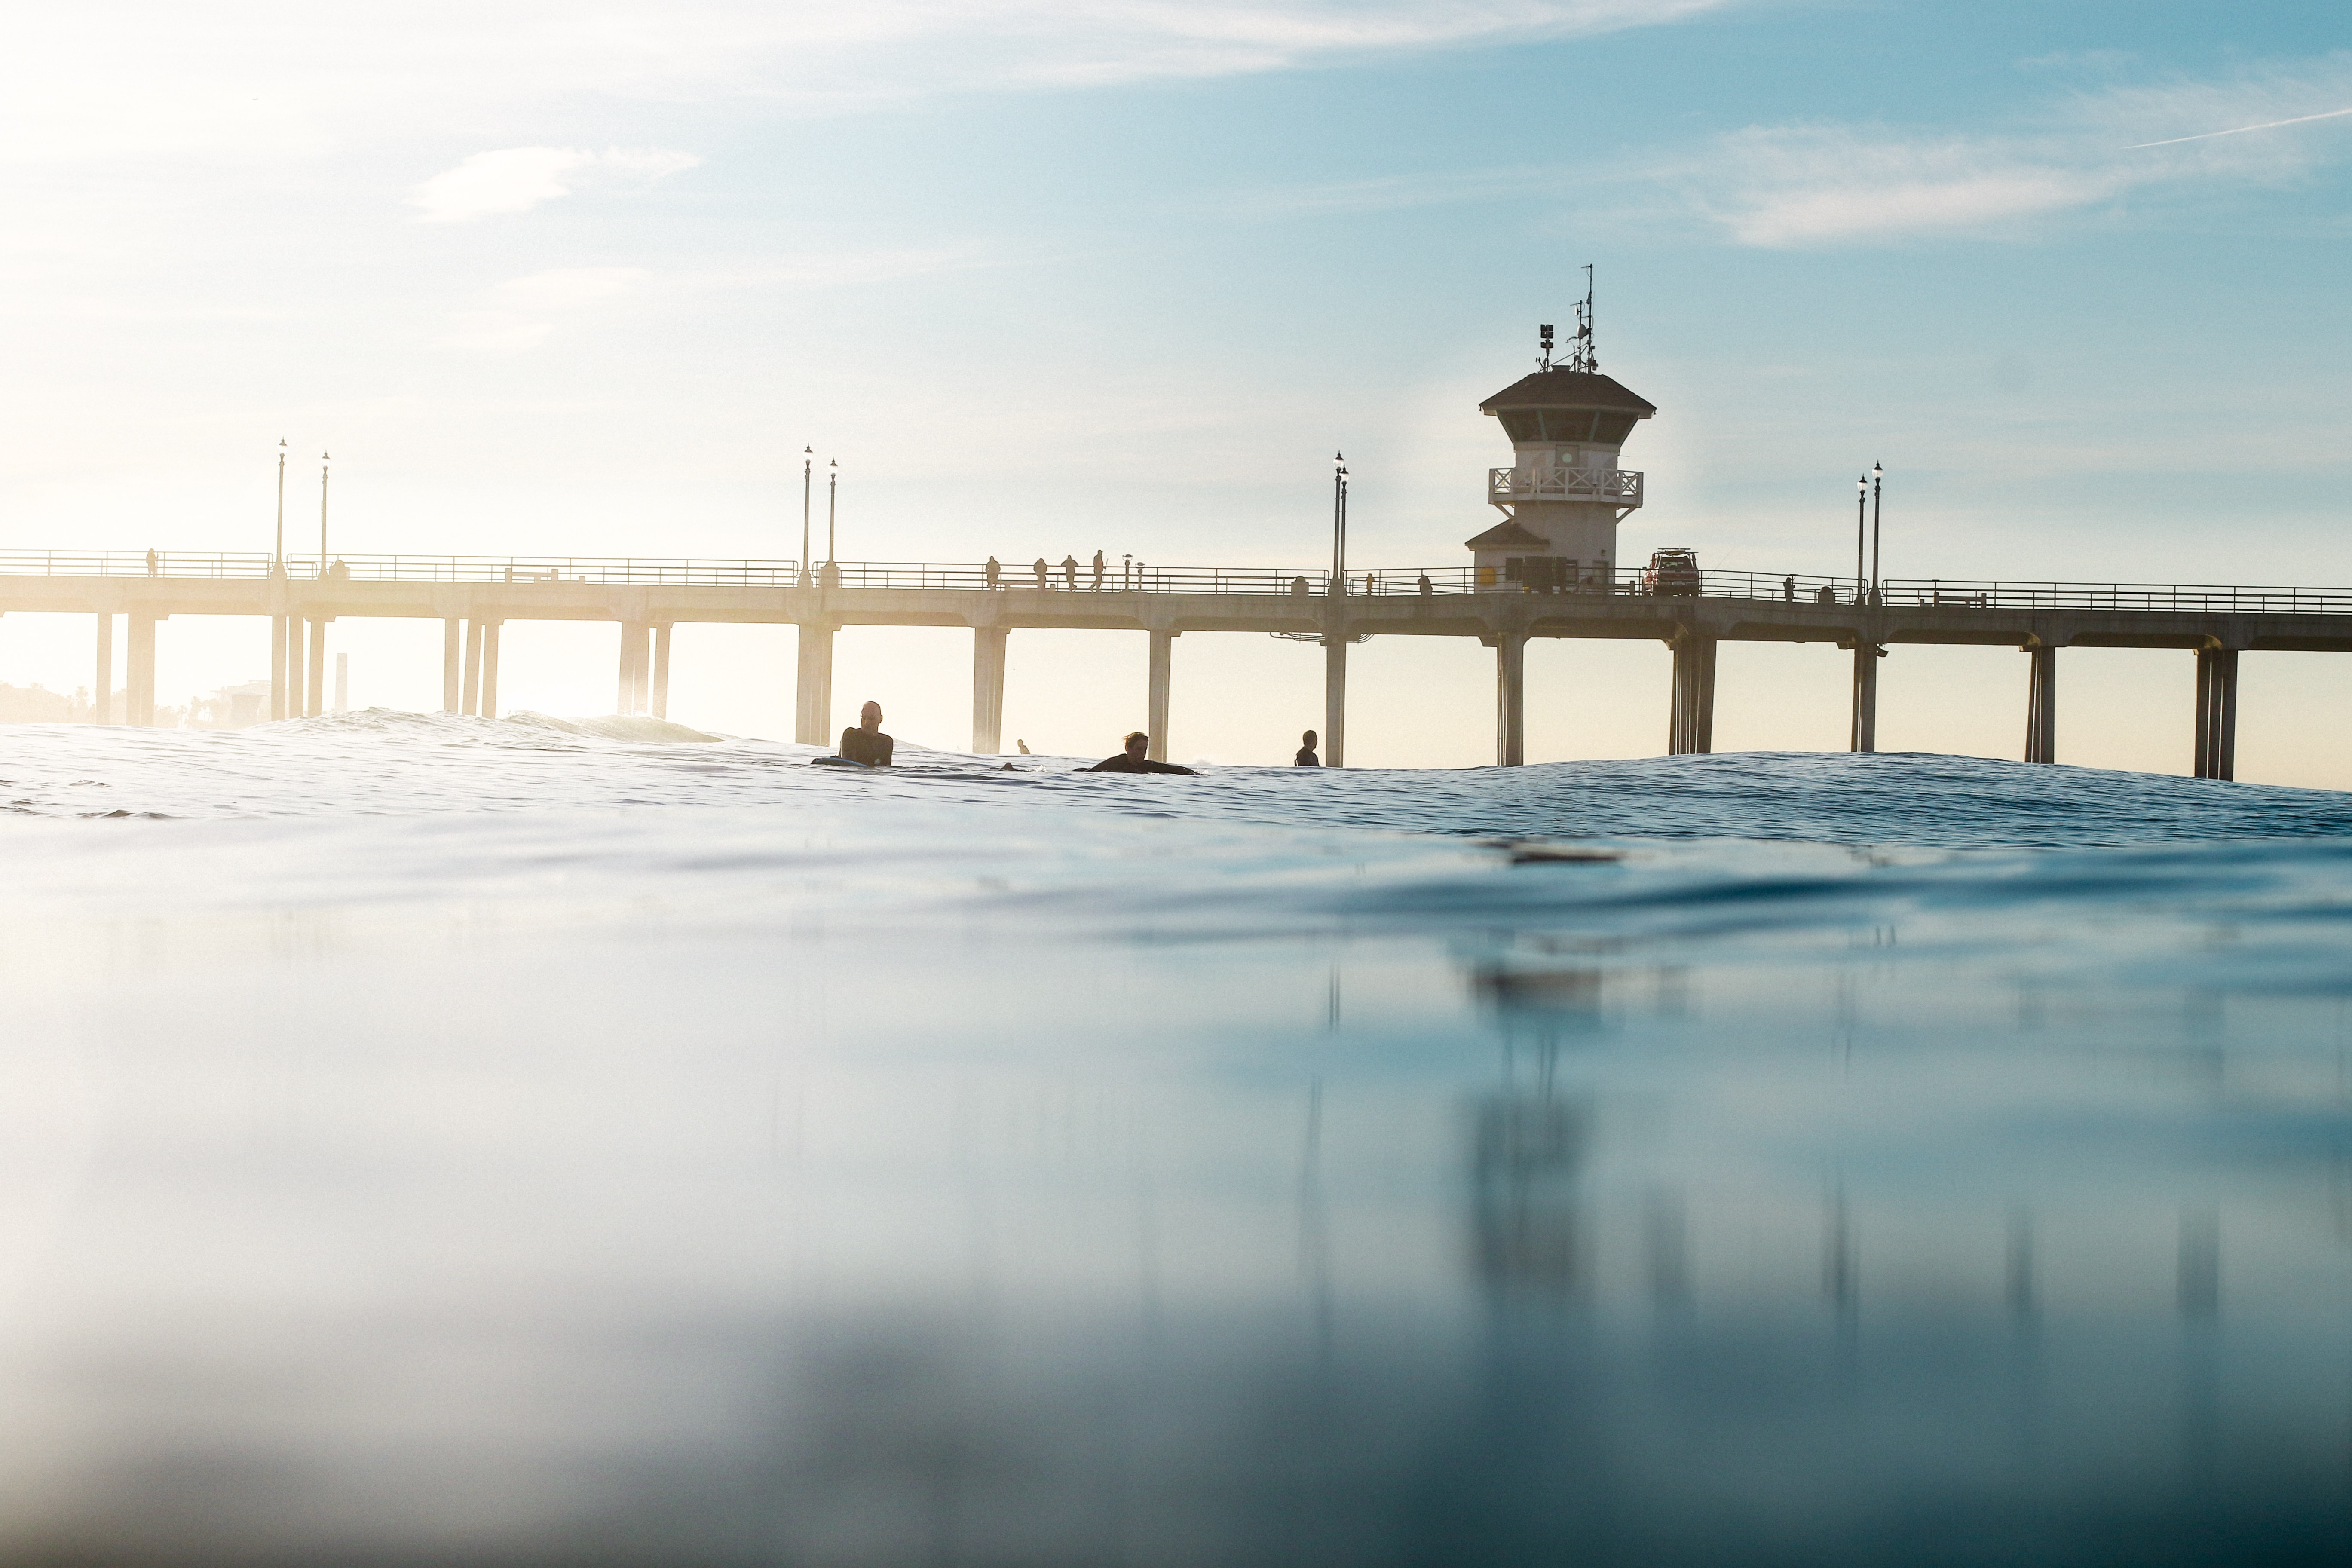 Pier and surfers from the water surface at Huntington Beach